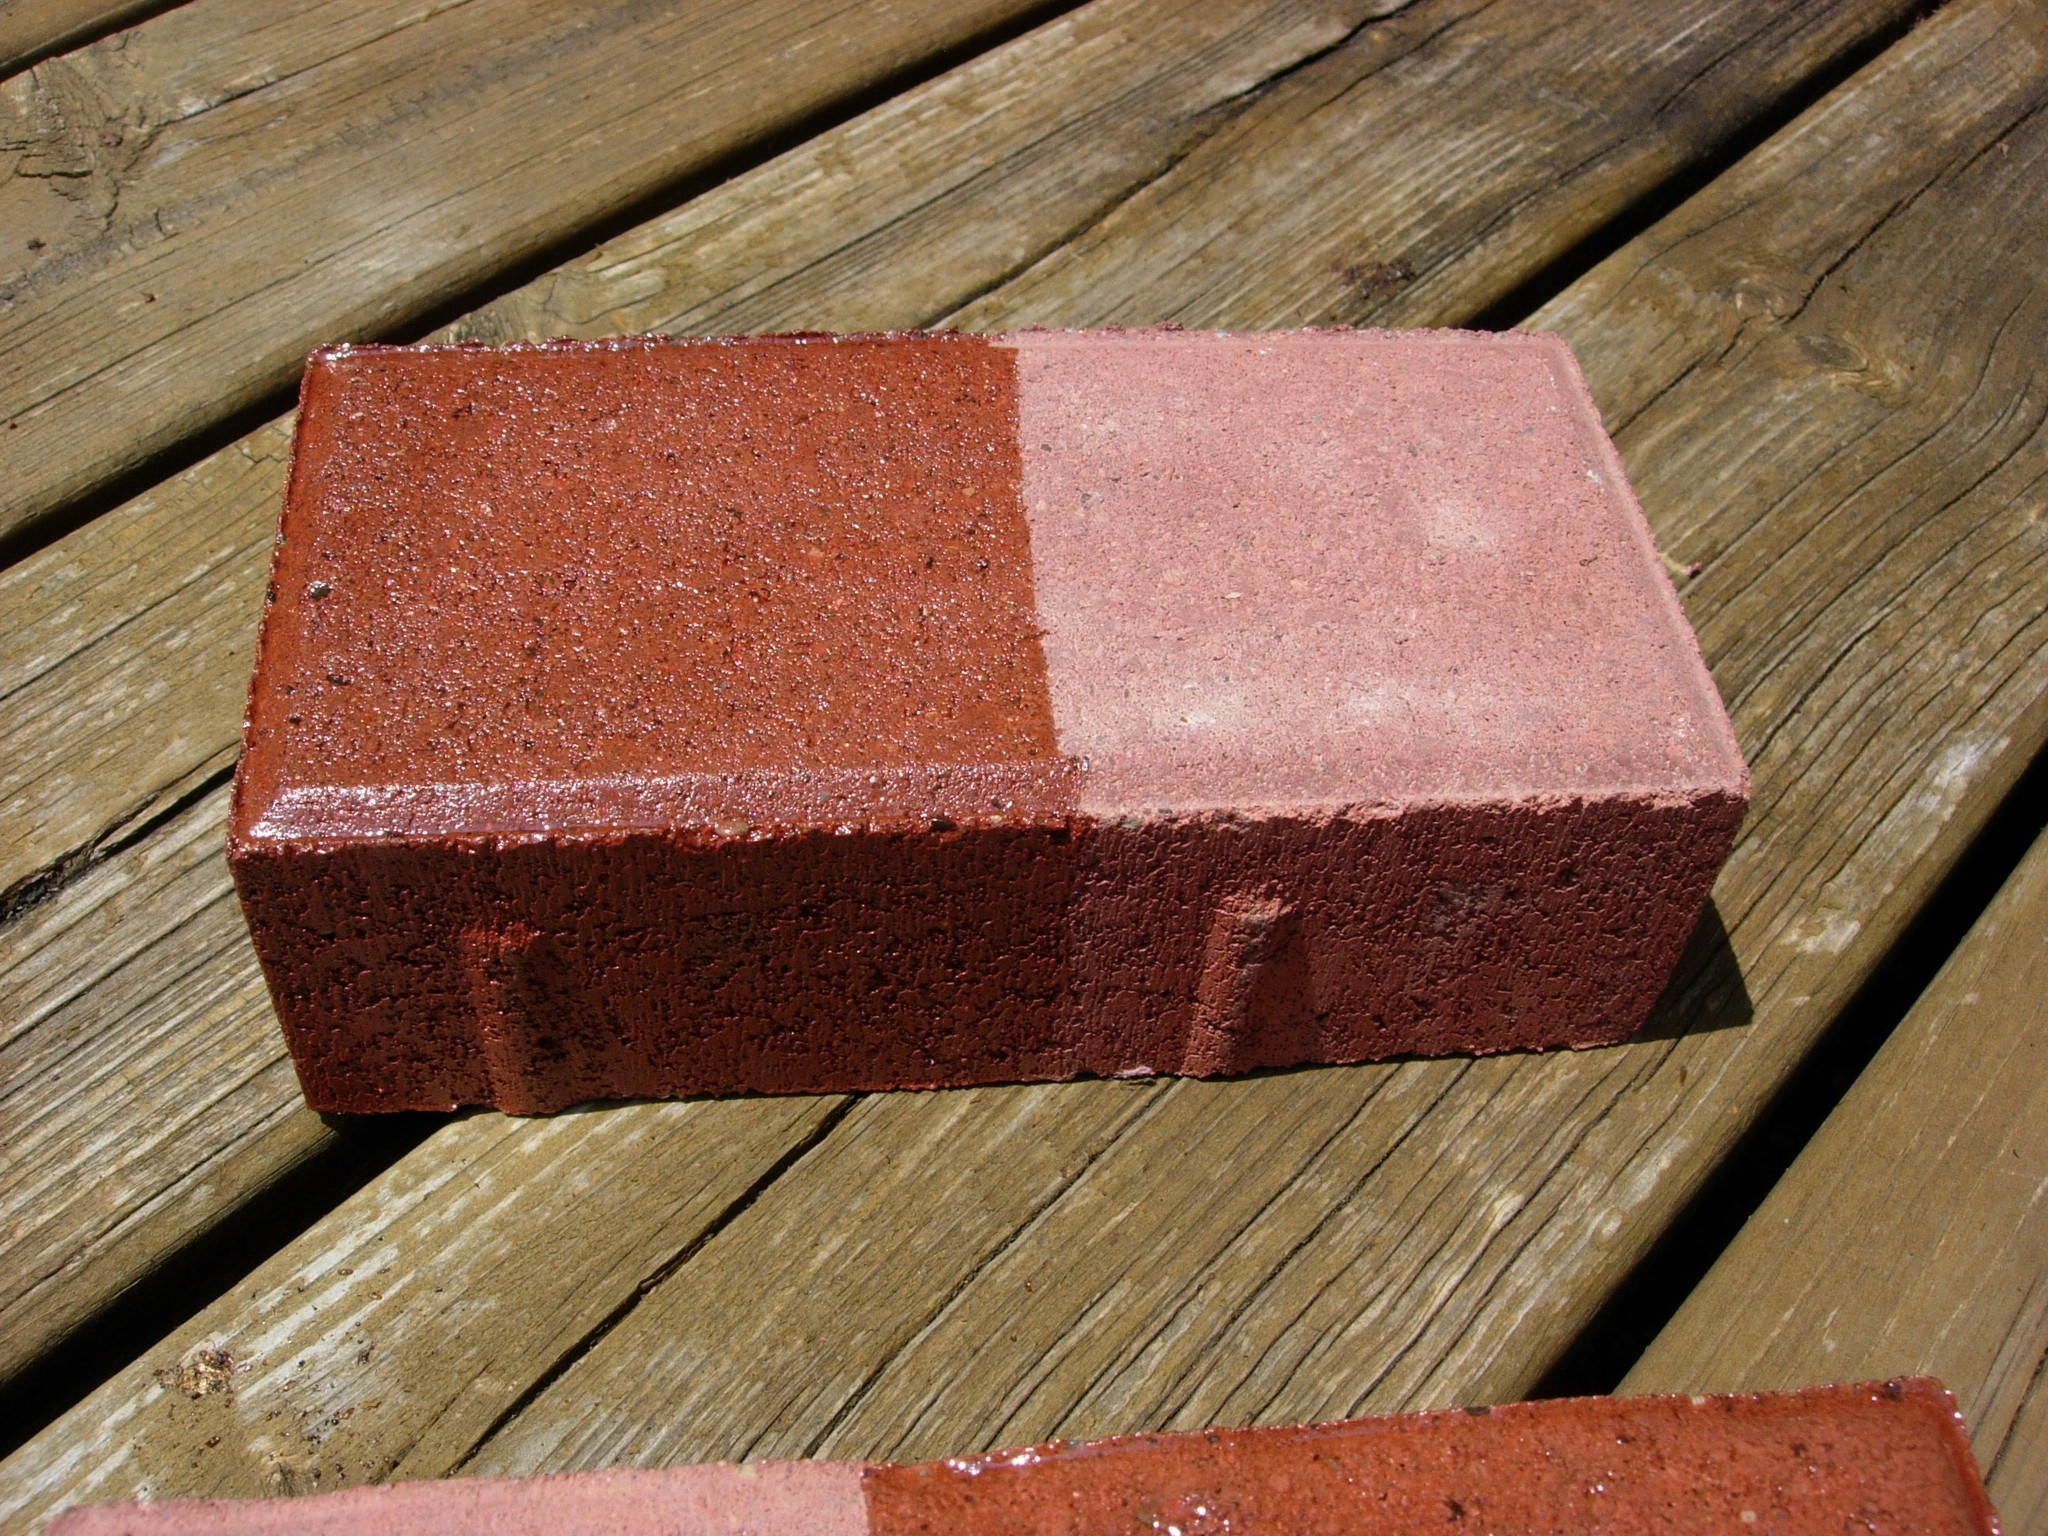 https://www.vseal.com/media/catalog/product/cache/1/image/9df78eab33525d08d6e5fb8d27136e95/P/i/Pic_Concrete_Paver_Red_Brick_Half_Sealed_IG-SB_3.jpg